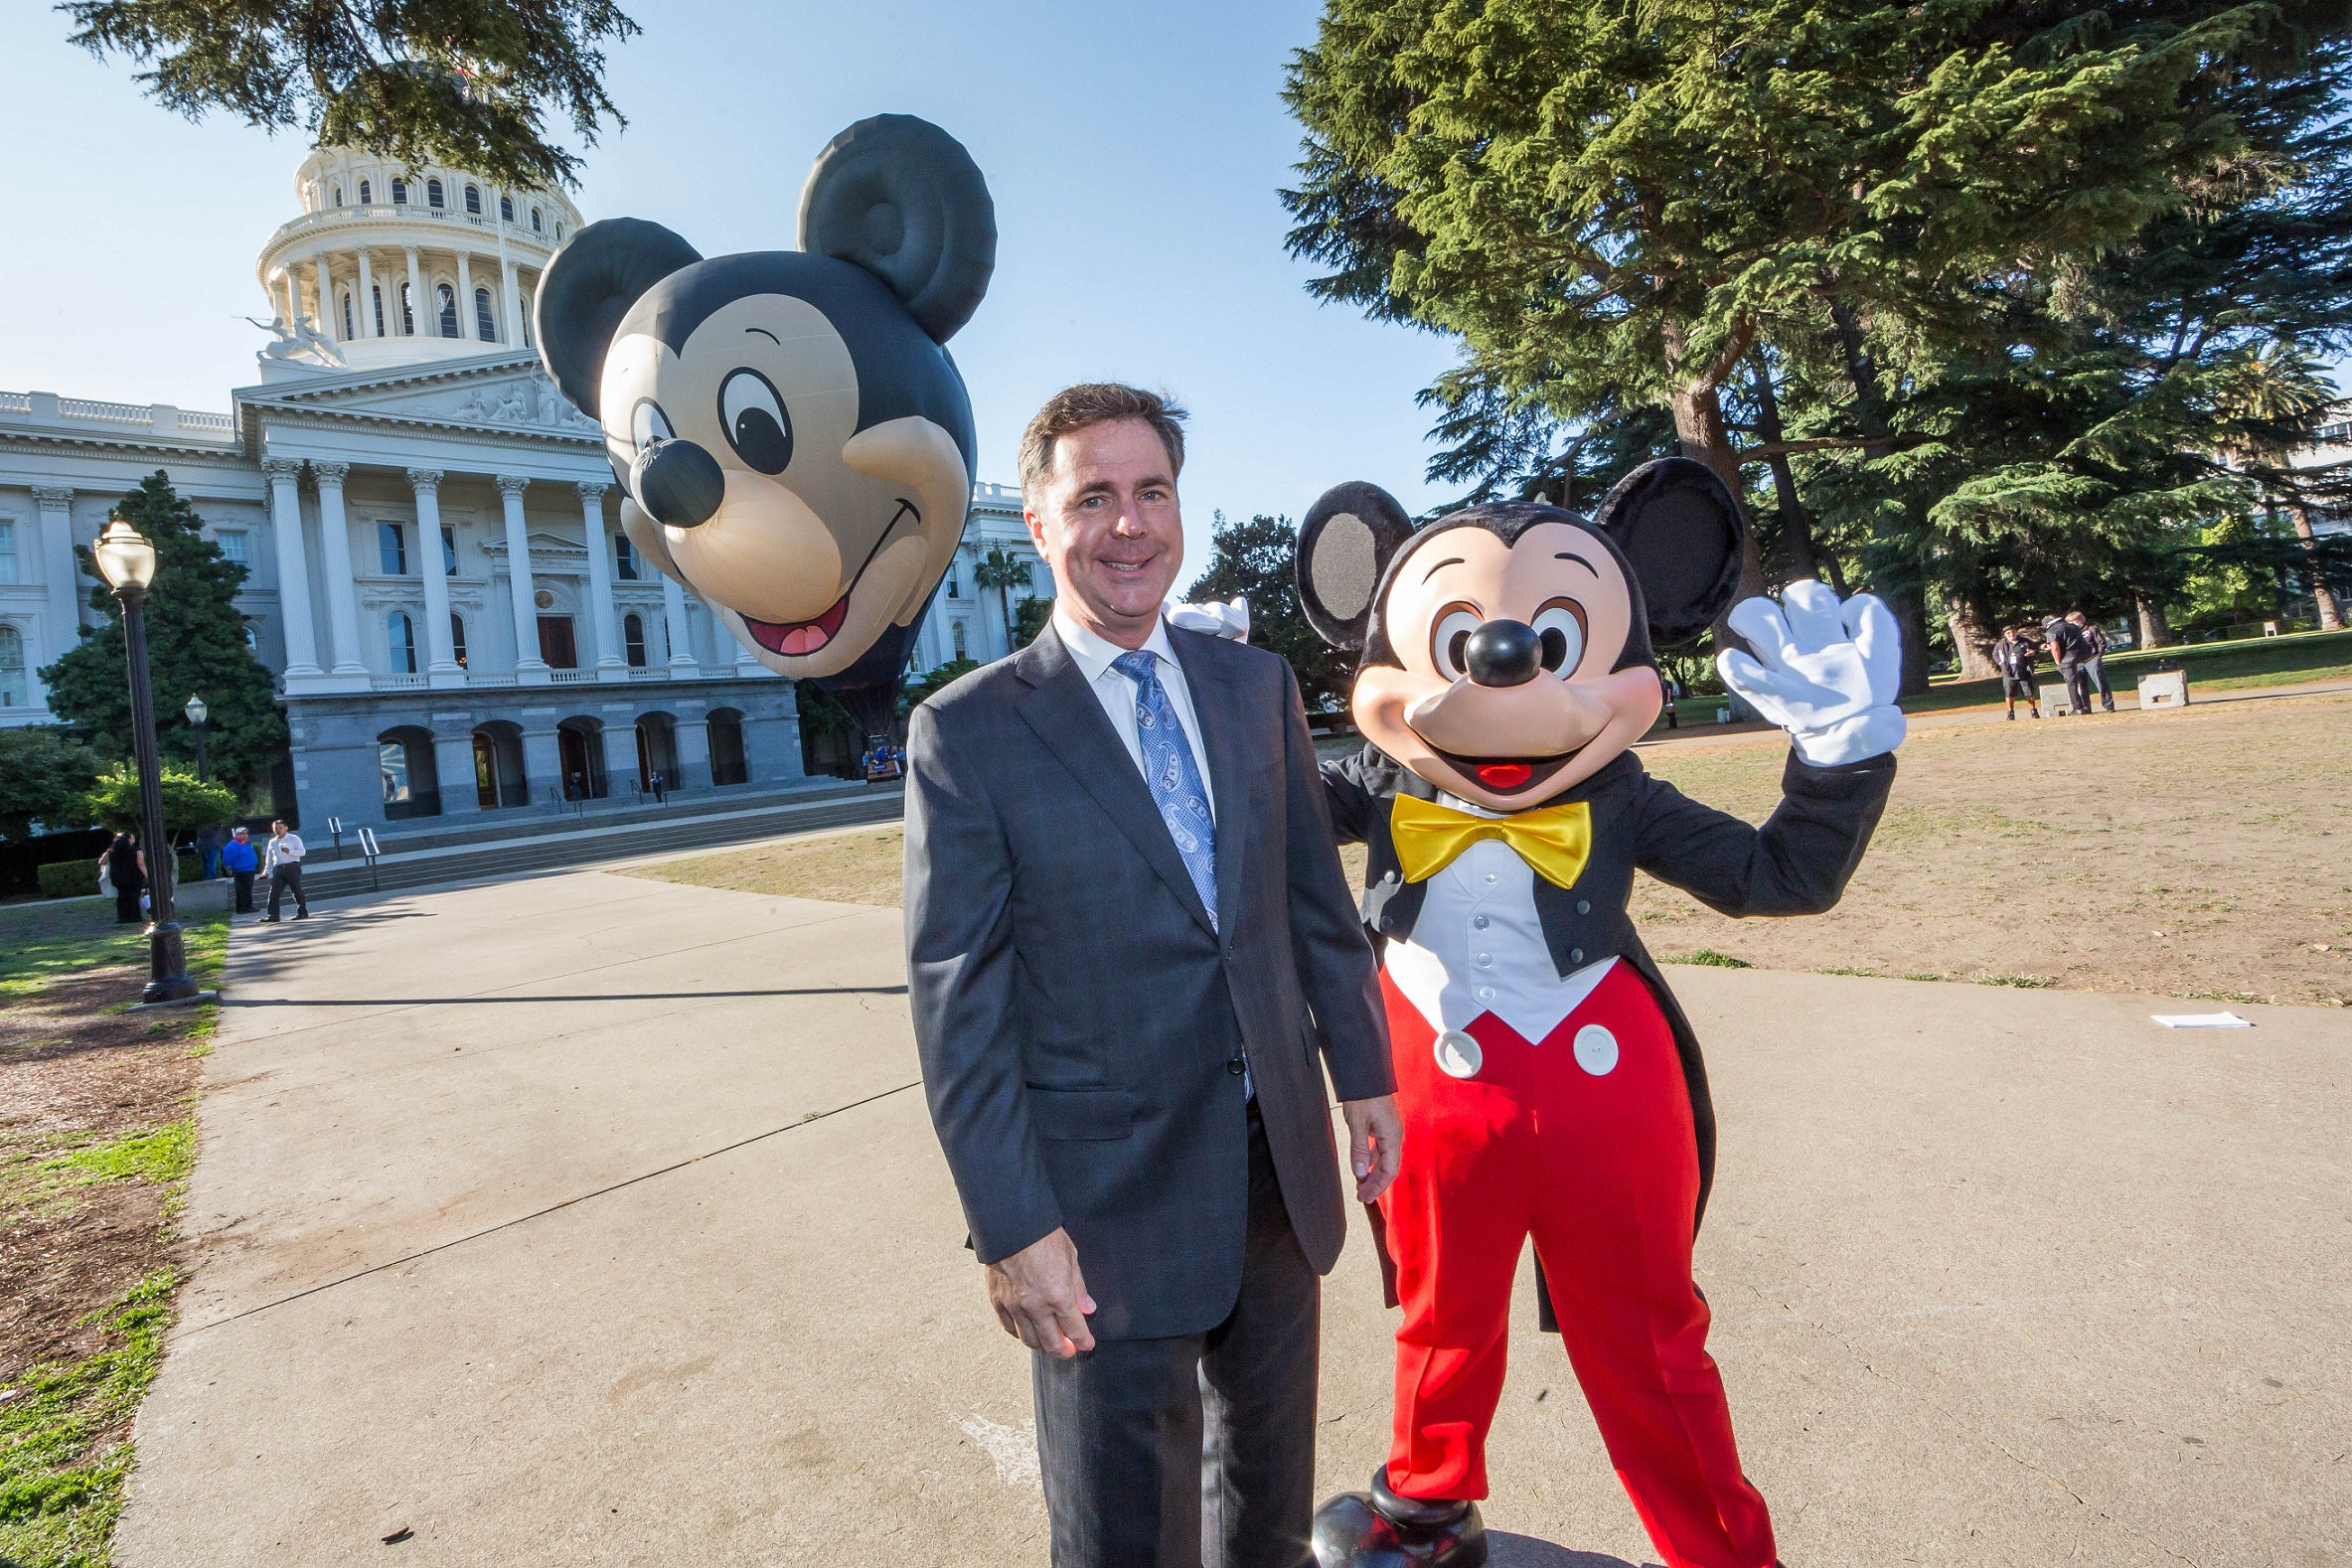 Michael Colglazier Promoted to President and Managing Director of Walt Disney Parks and Resorts Asia Pacific